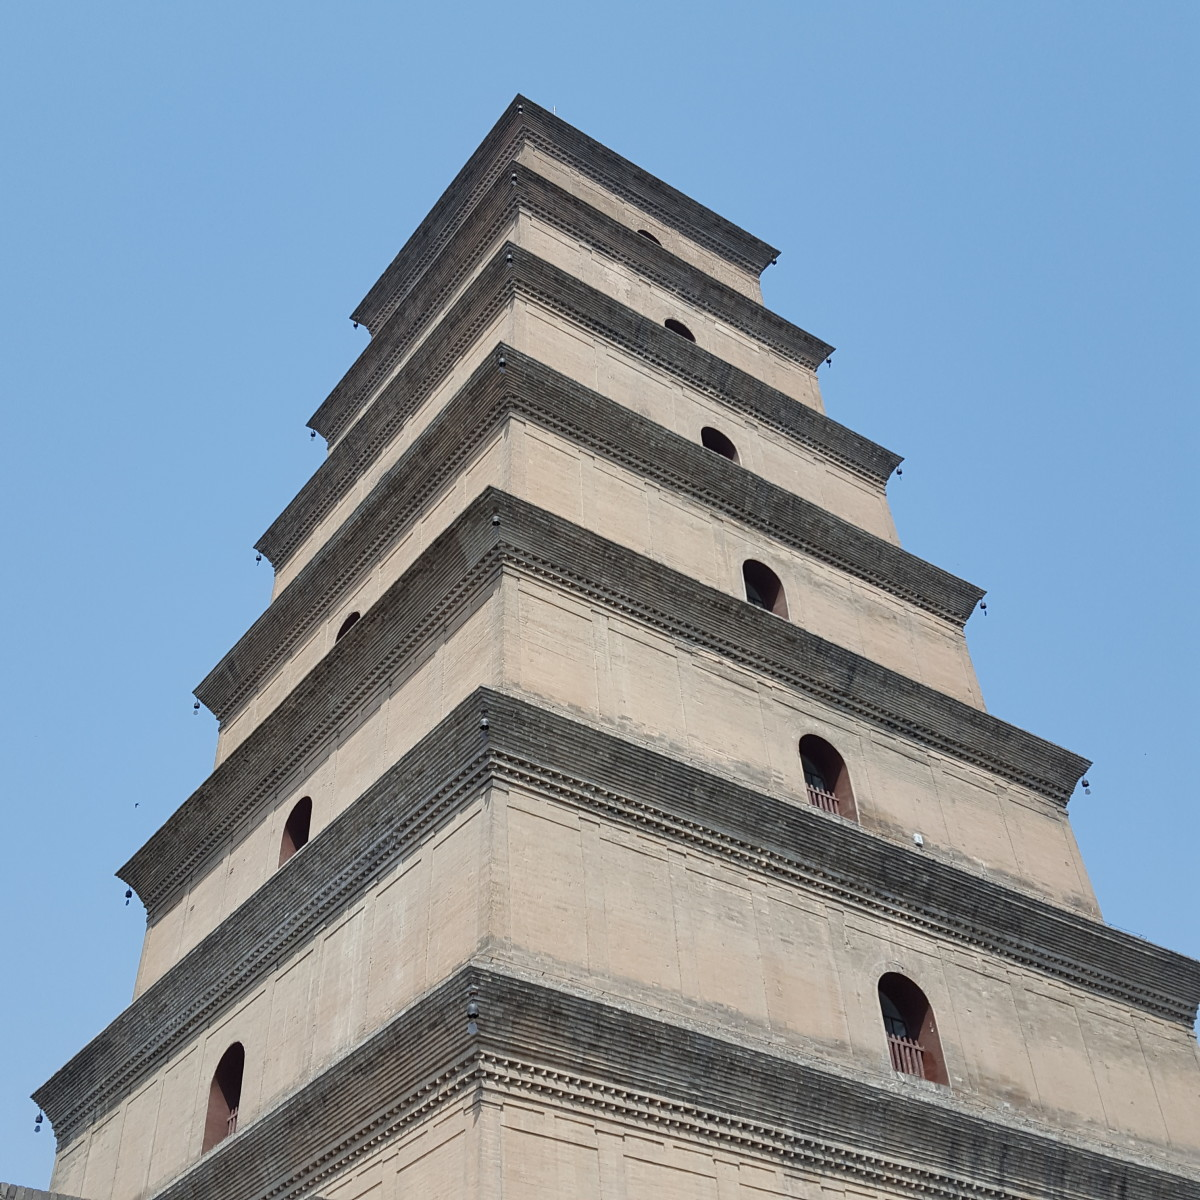 The Big Wild Goose Pagoda against a blue sky.